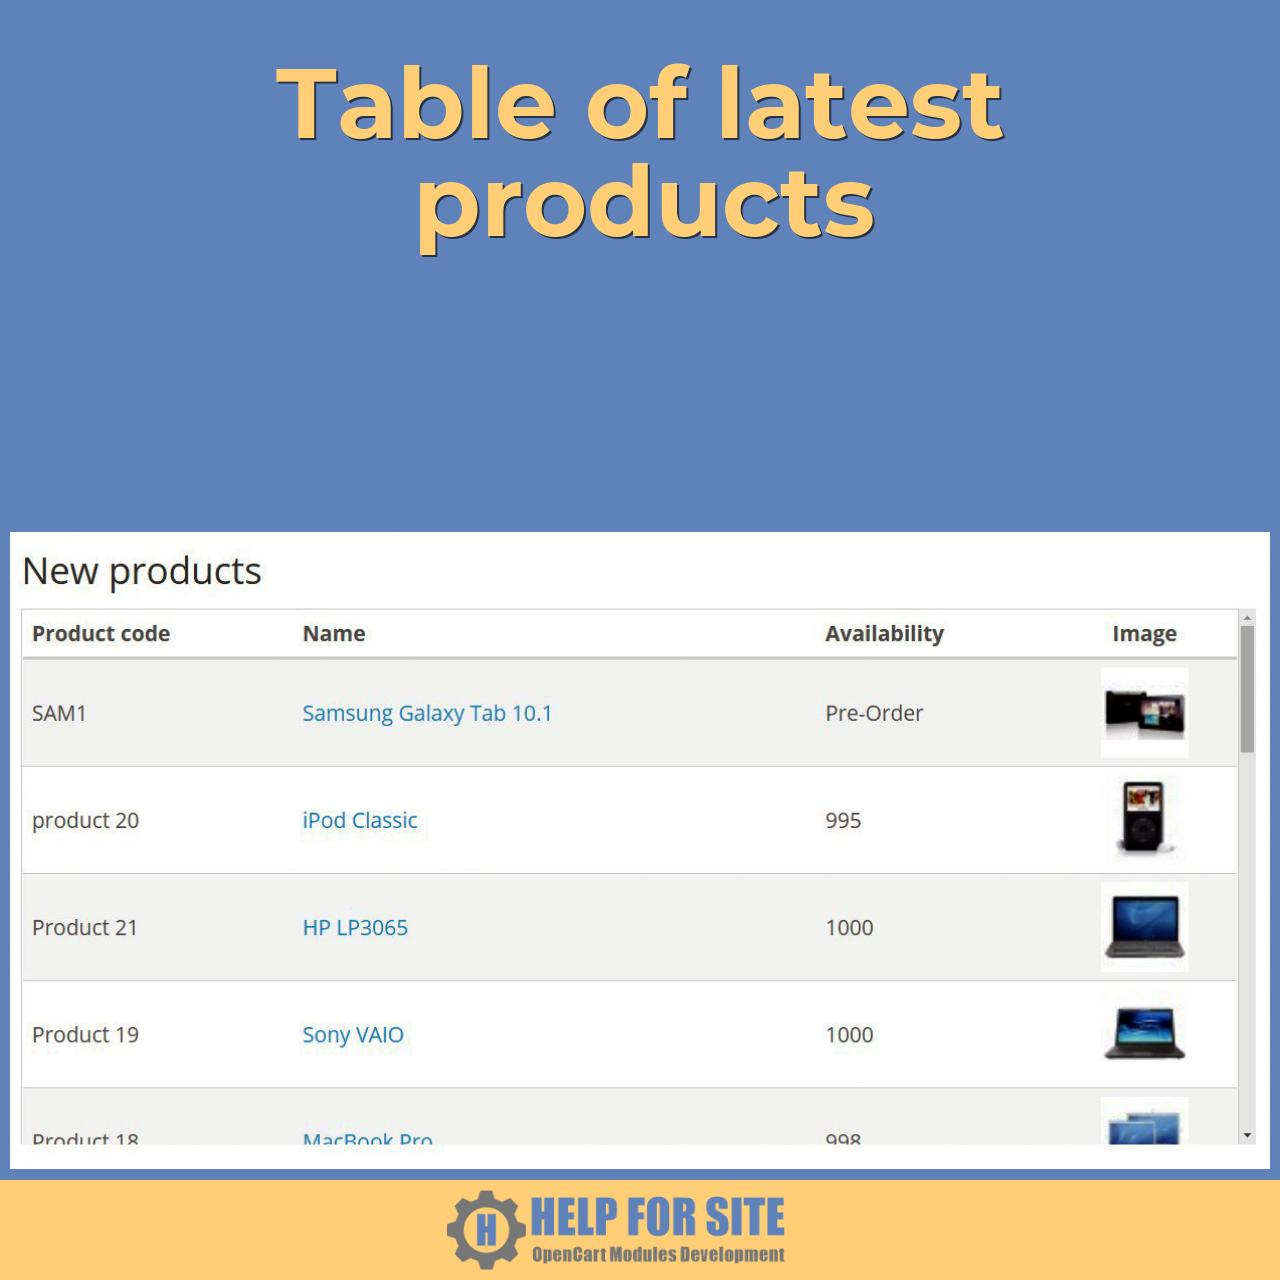 Table of latest products